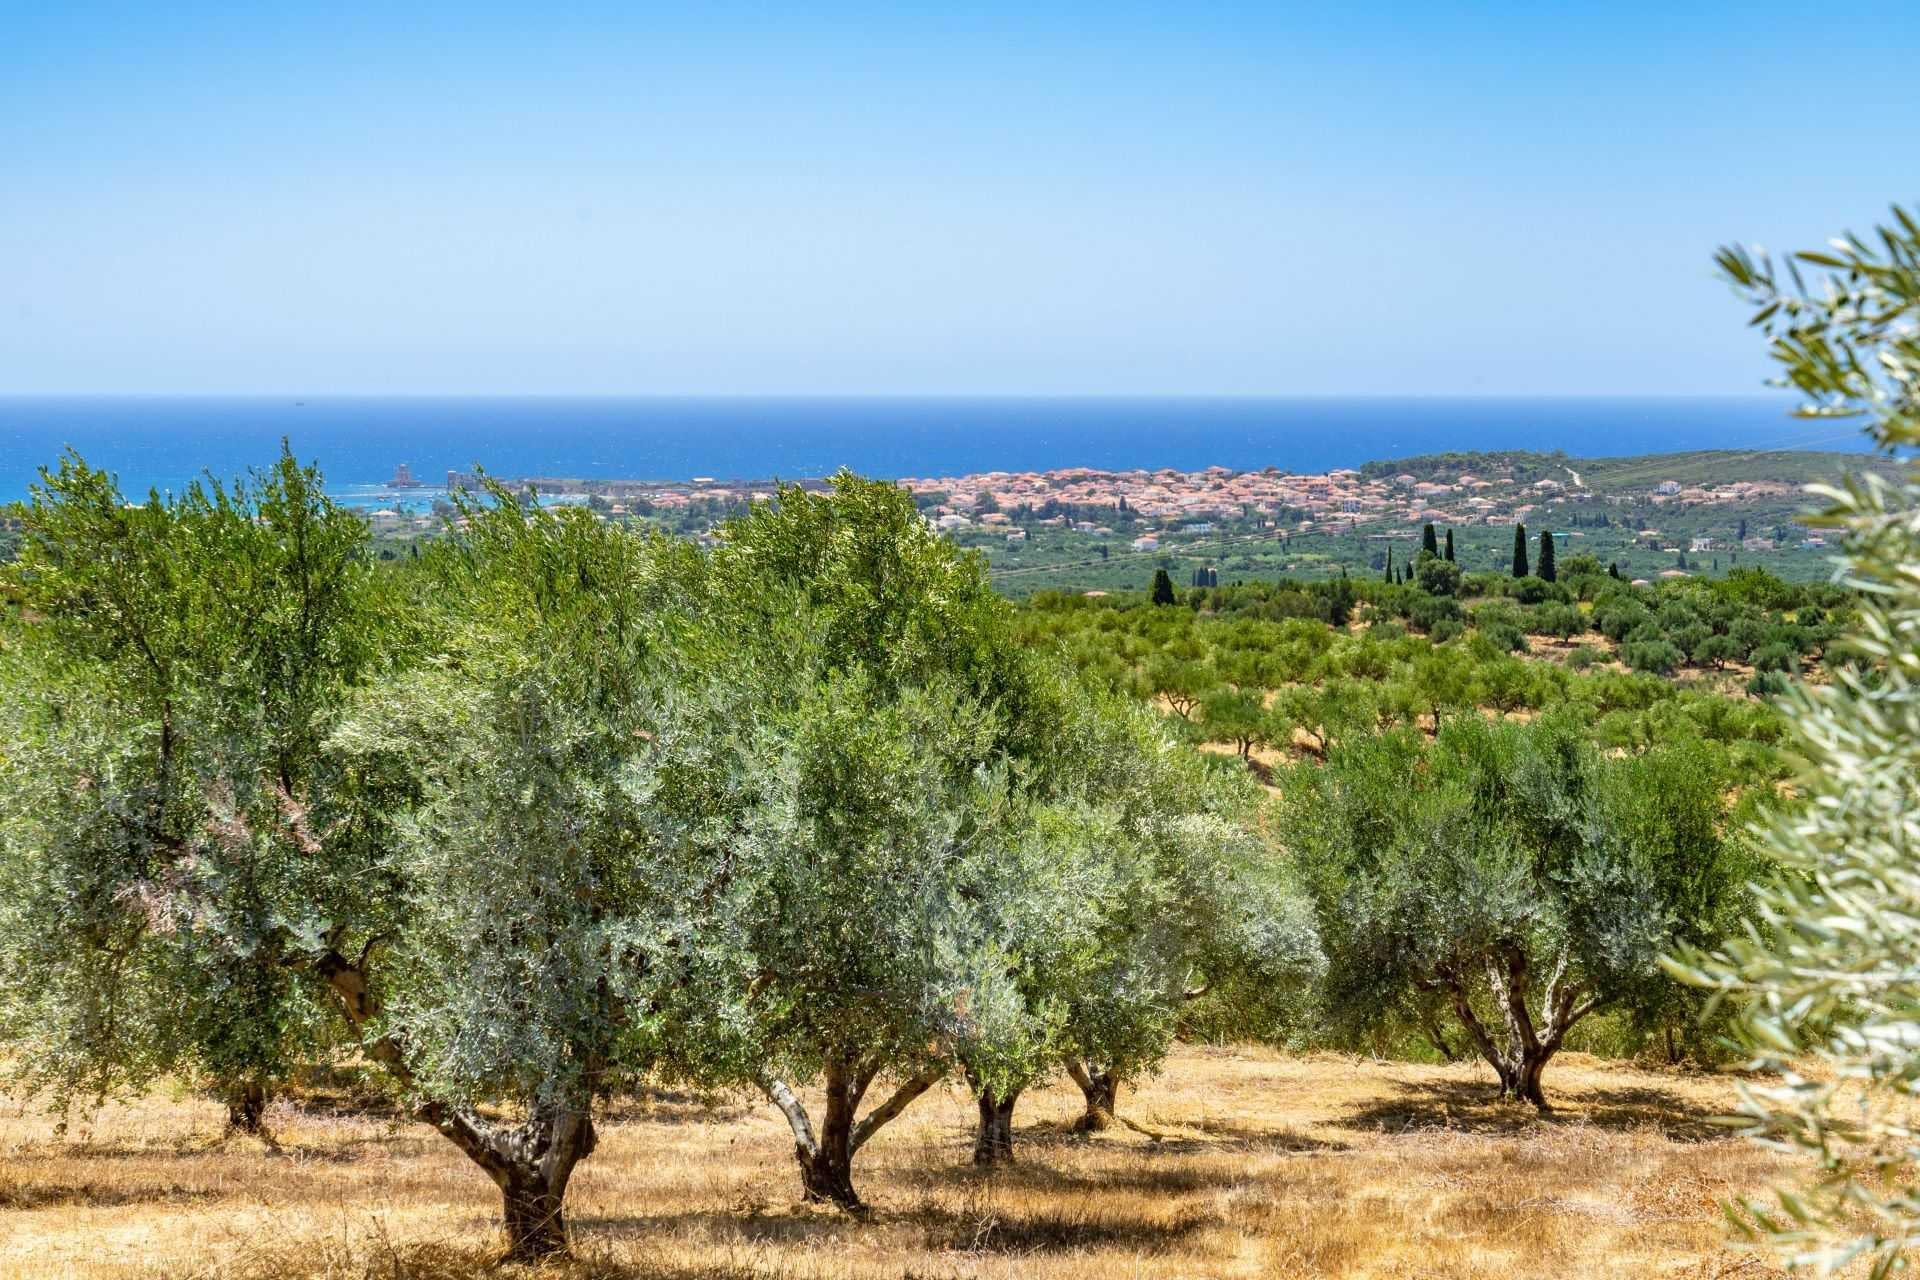 world-decorated-olive-oil-bottles-to-be-auctioned-as-crypto-assets-olive-oil-times